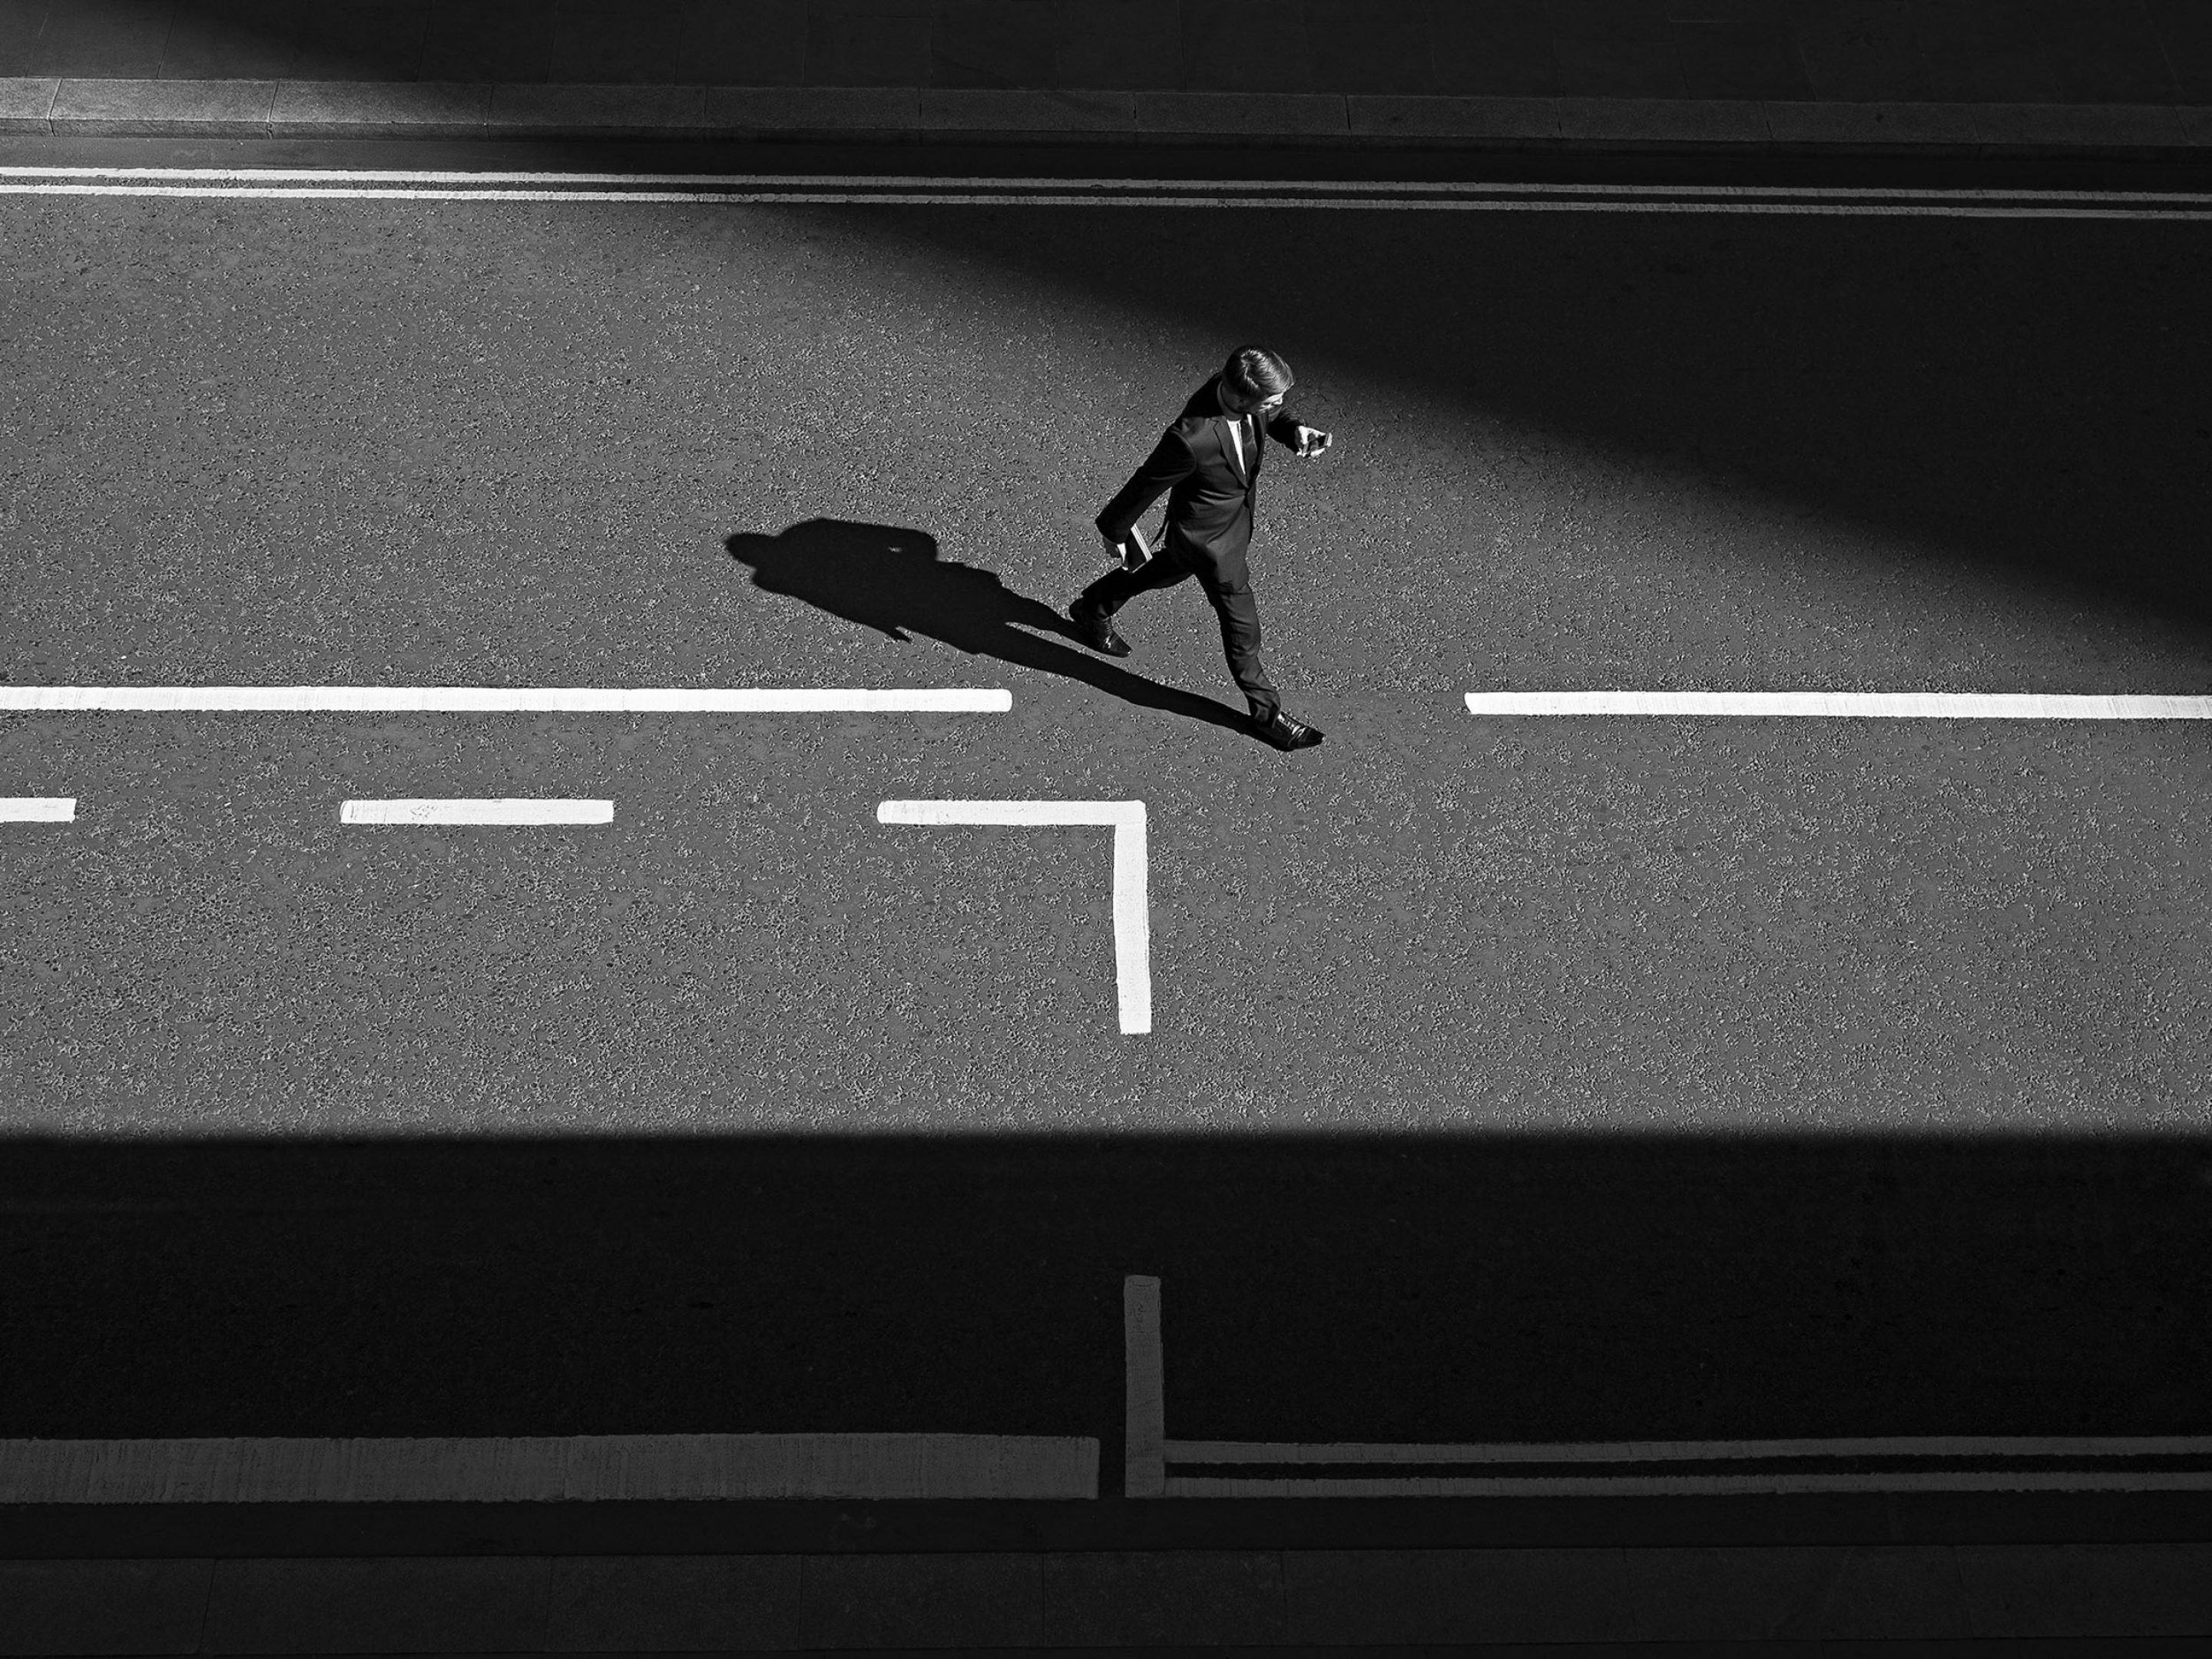 Rupert Vandervell Photographs The Streets Of London With Patience And...